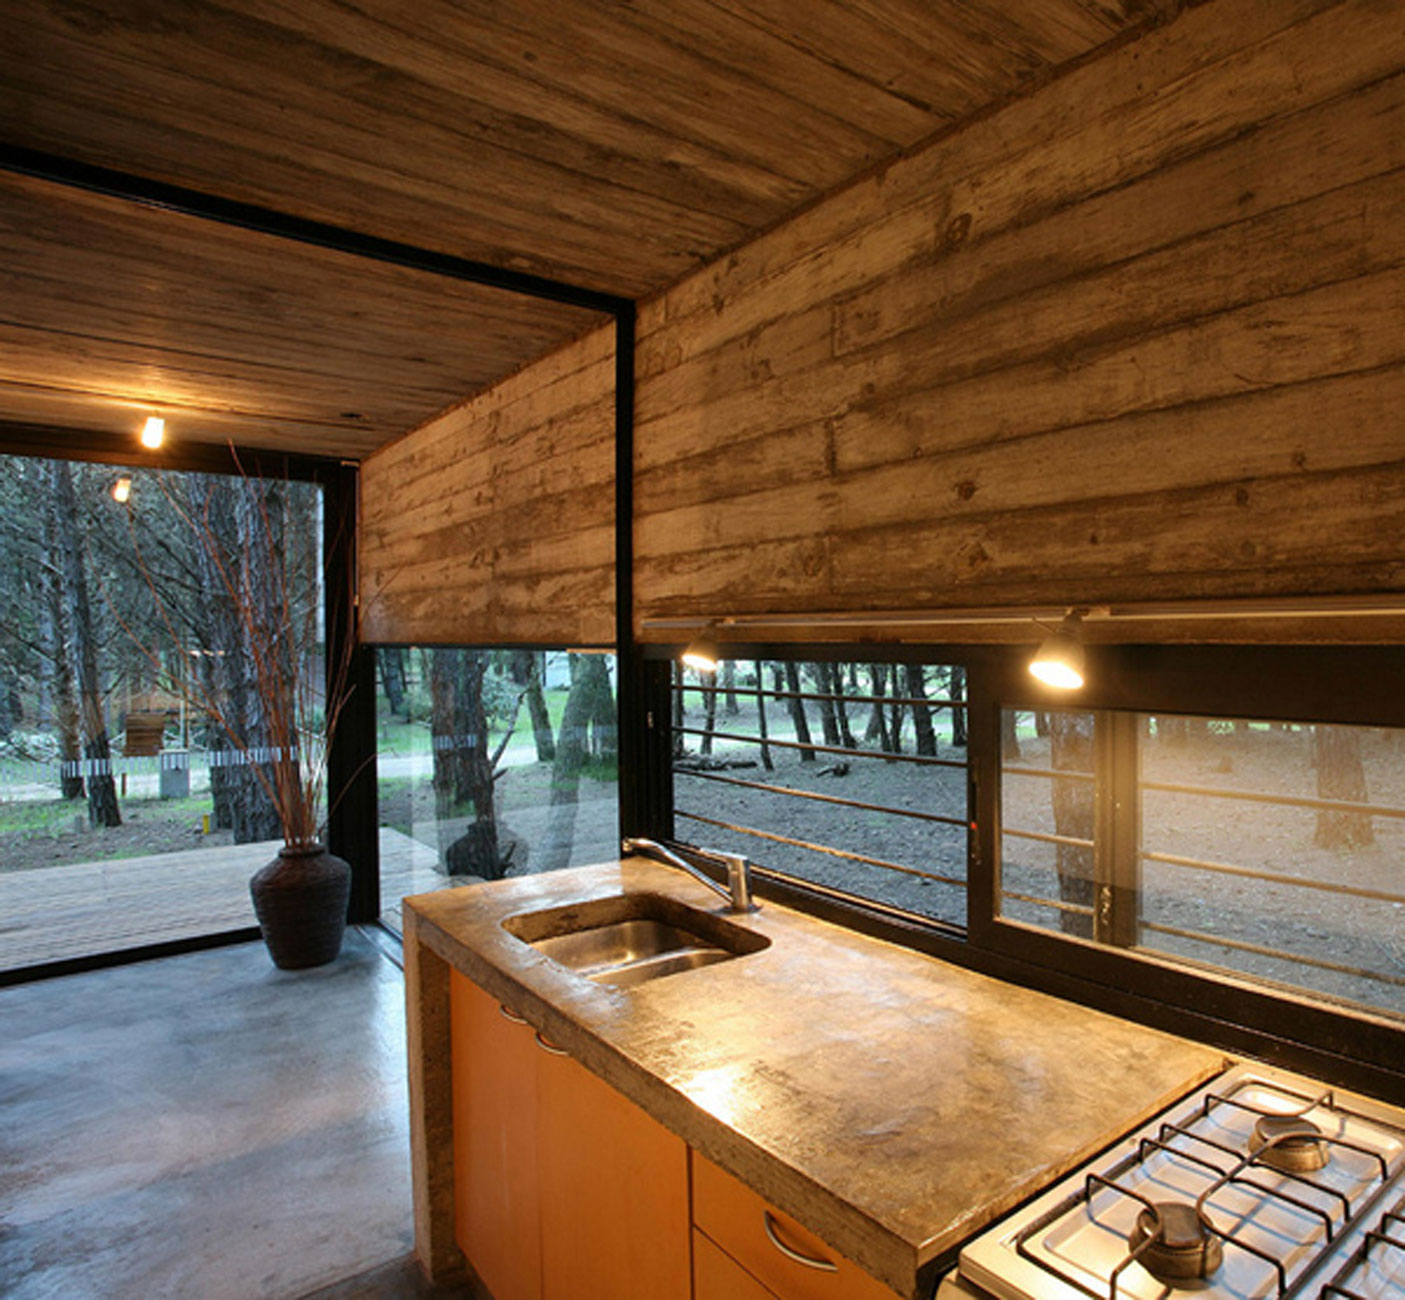 Eco friendly cottage design in argentina kitchen for Eco cabin designs